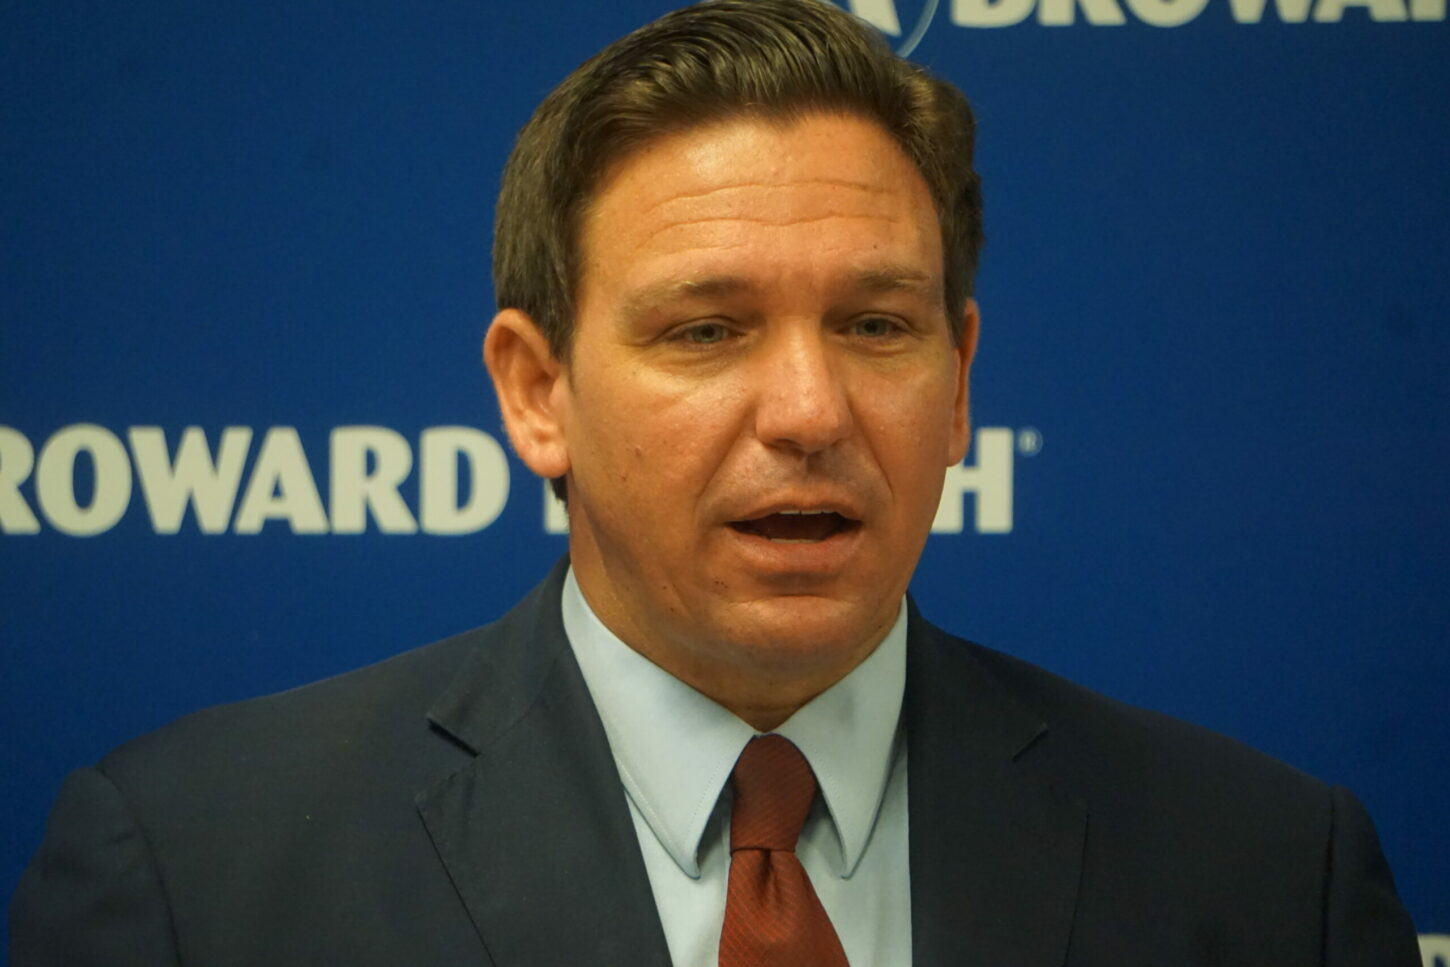 DeSantis says 'Yes, get Vaccinated' for COVID